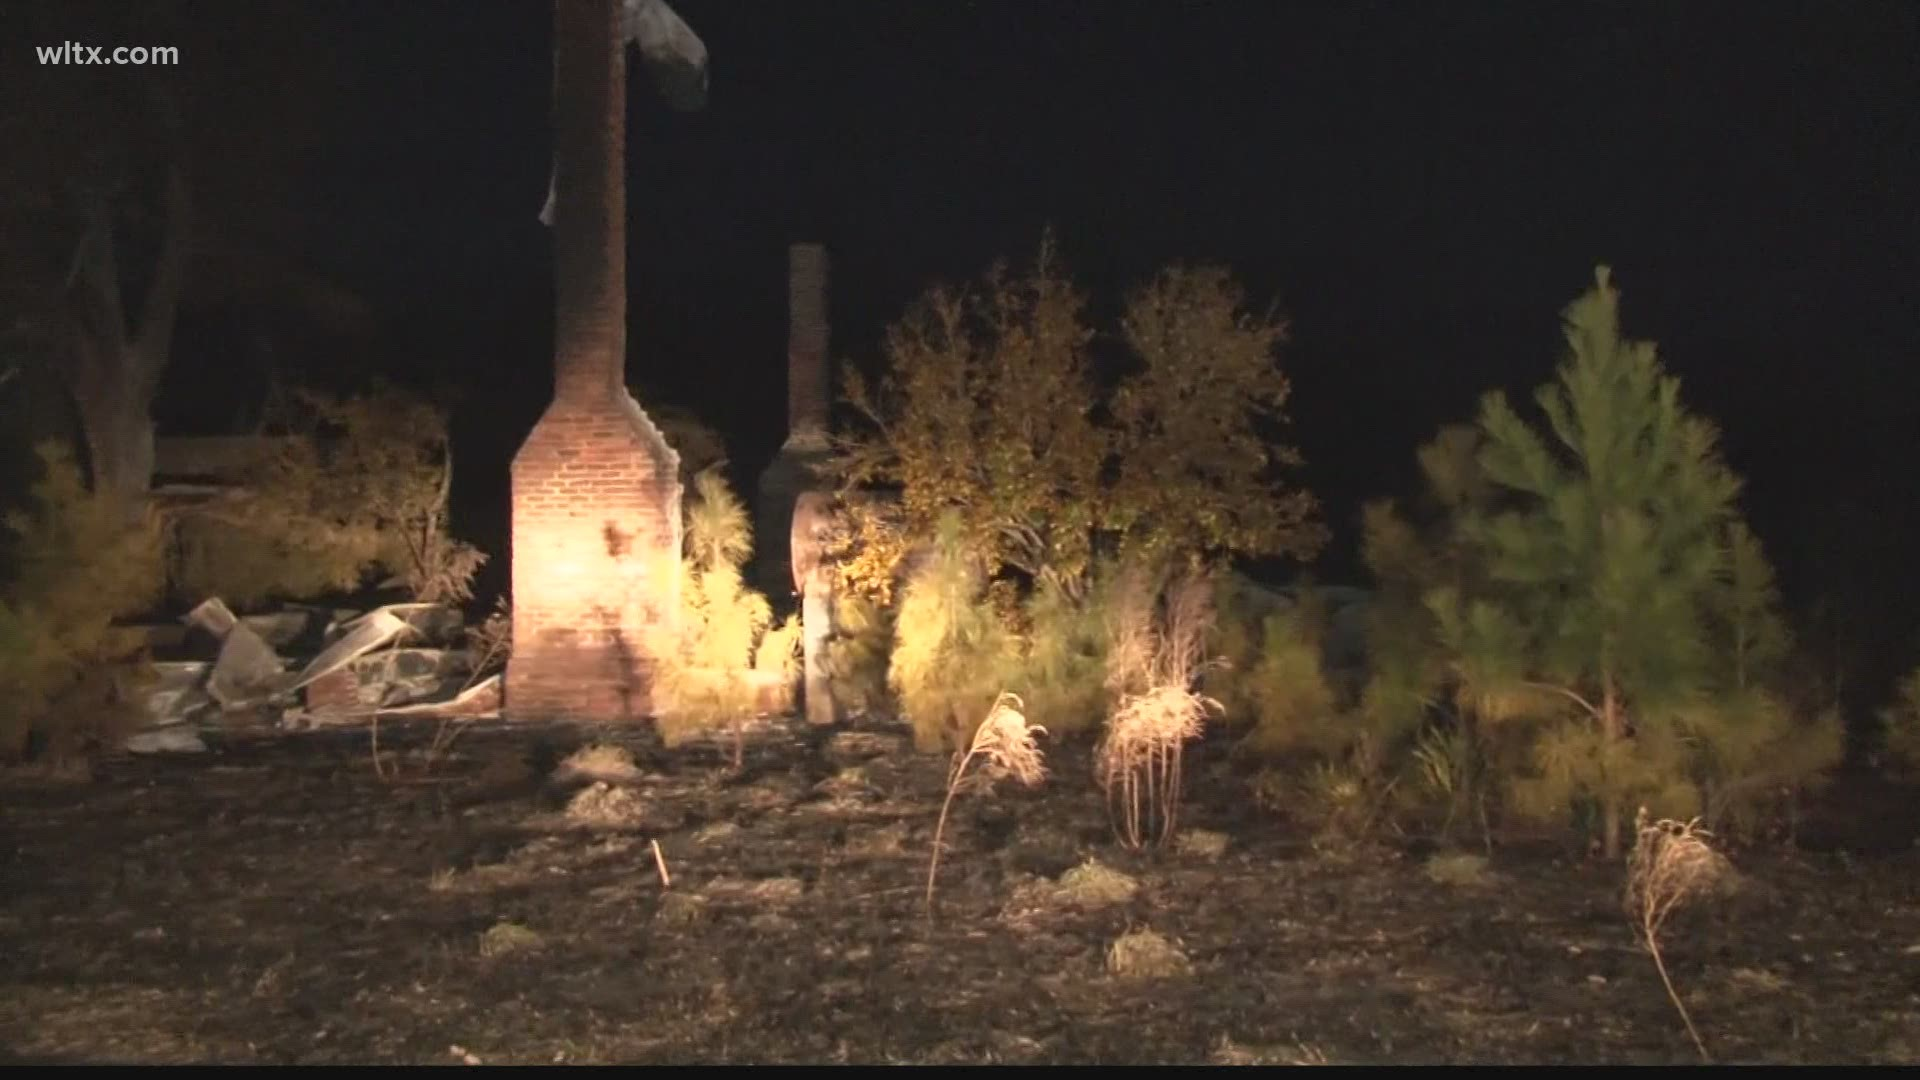 Haunted House Where Body Was Found In Freezer Burns Down Abc10 Com